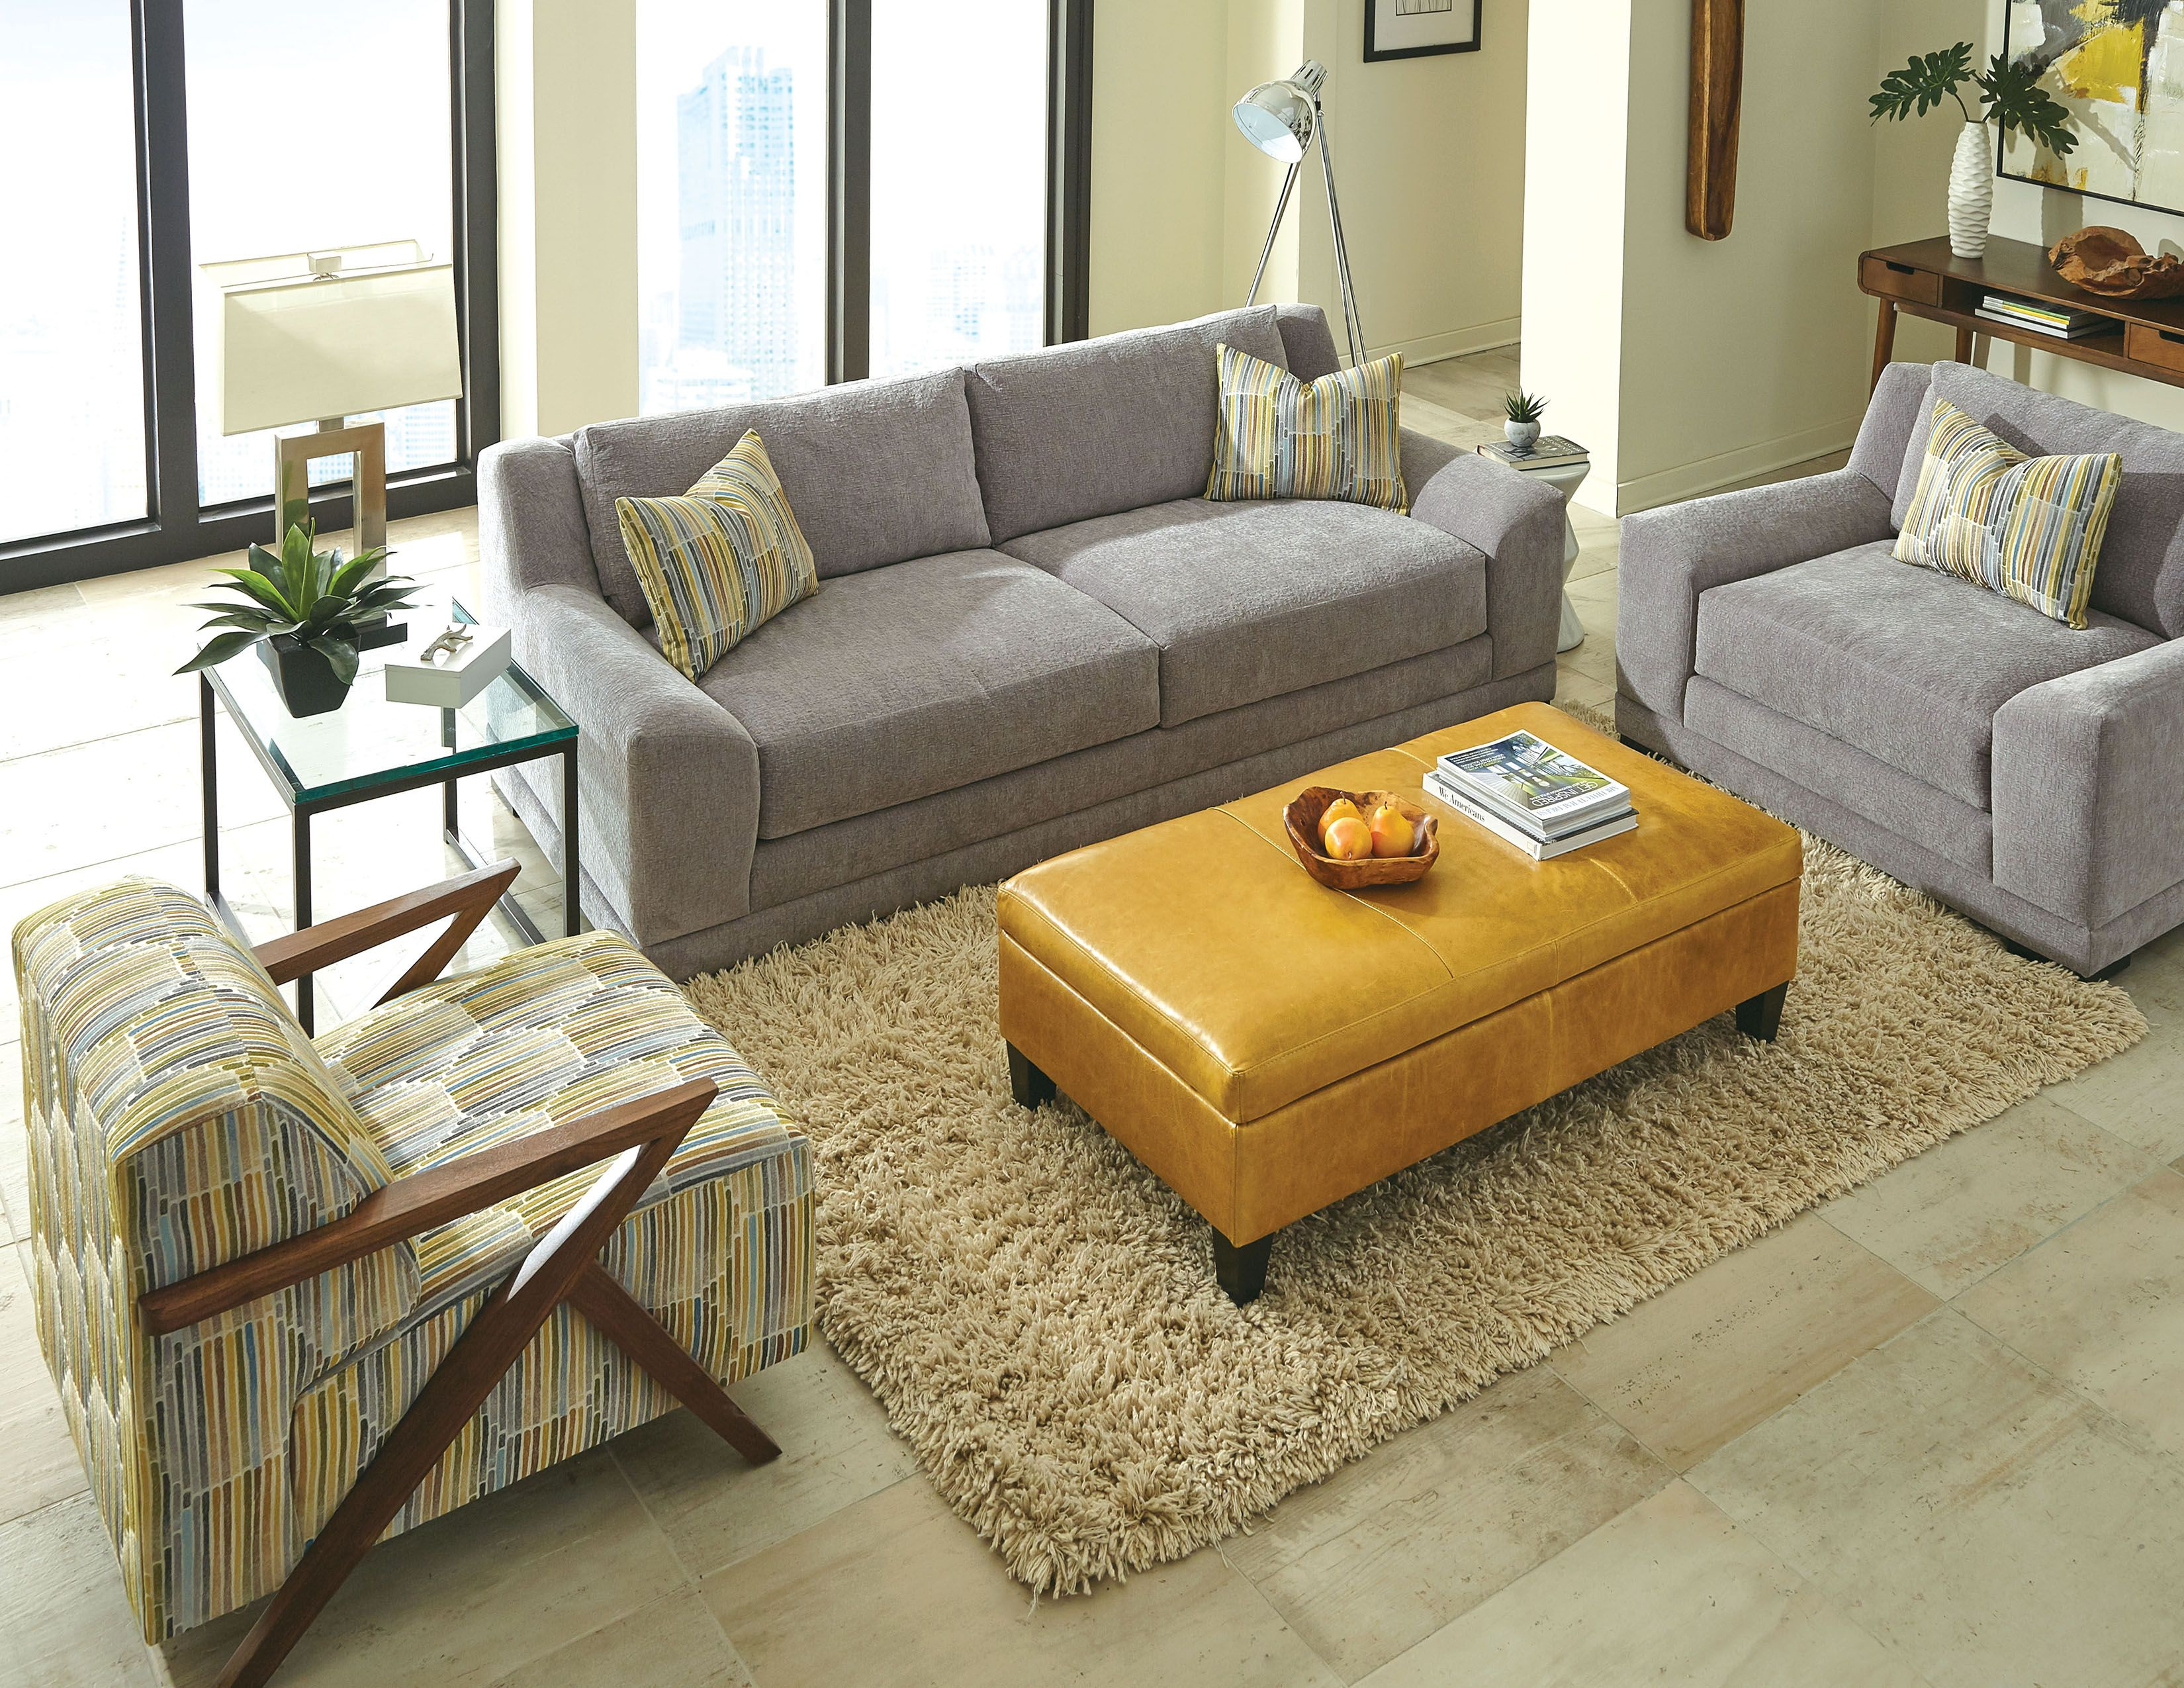 Pair grey tones with bright pops of color like mustard to create a